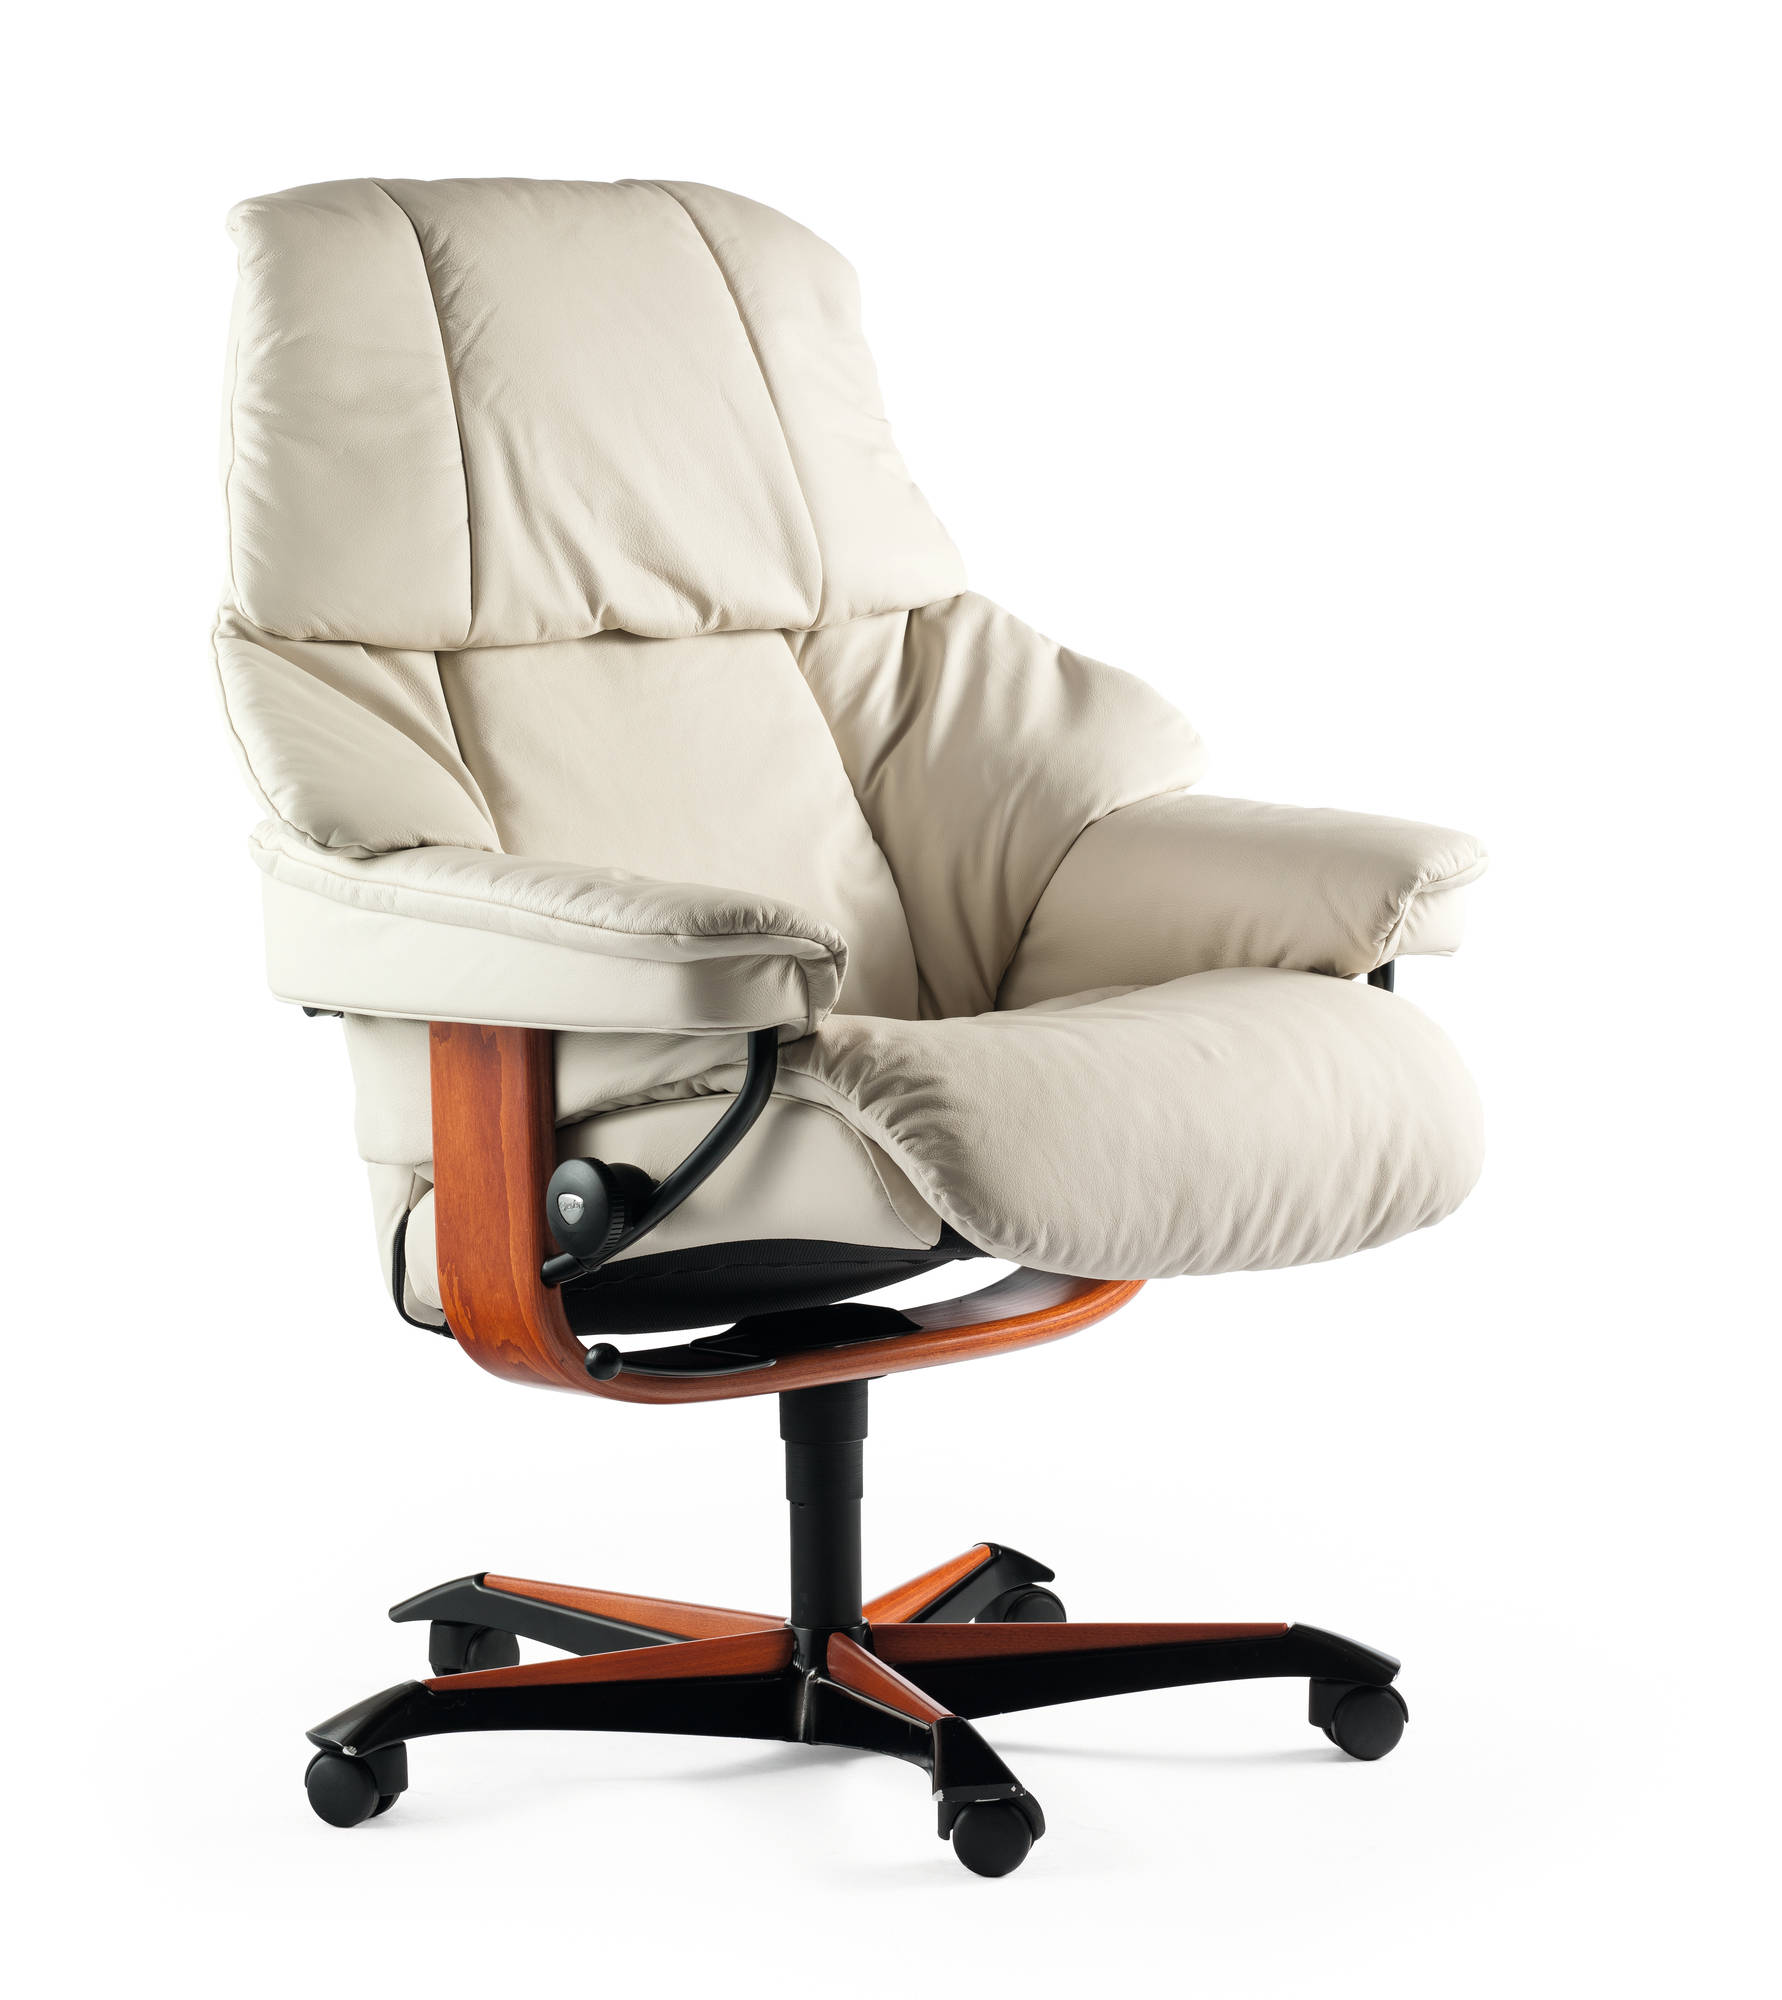 Stressless Sofa Adjustment Ekornes Stressless Reno Office Chair Pain Free Fast Delivery